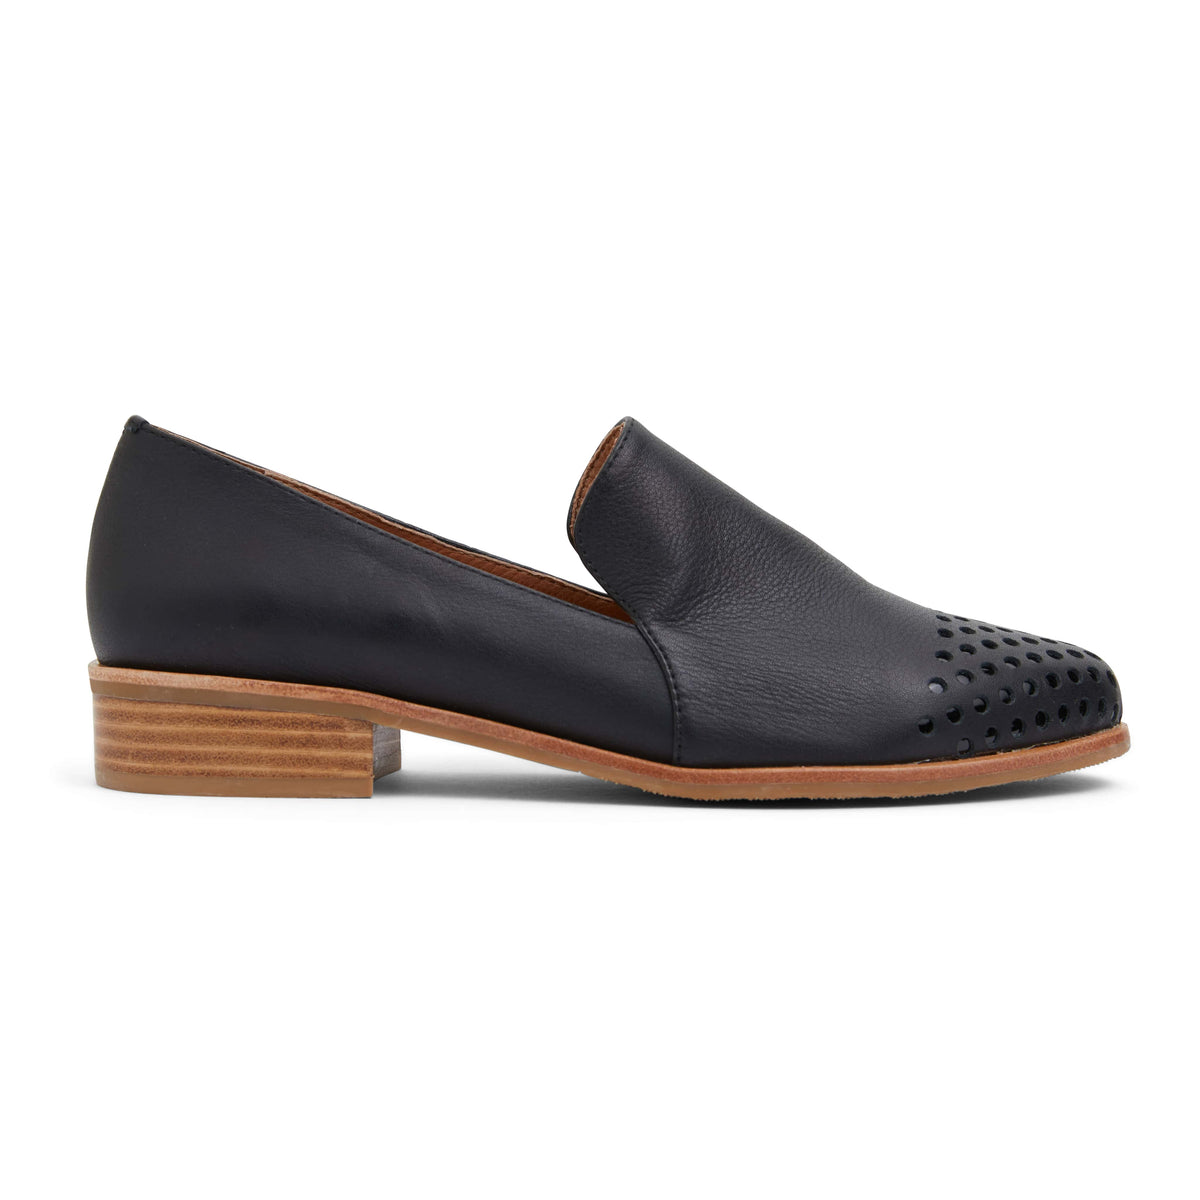 Shade Loafer in Black Leather